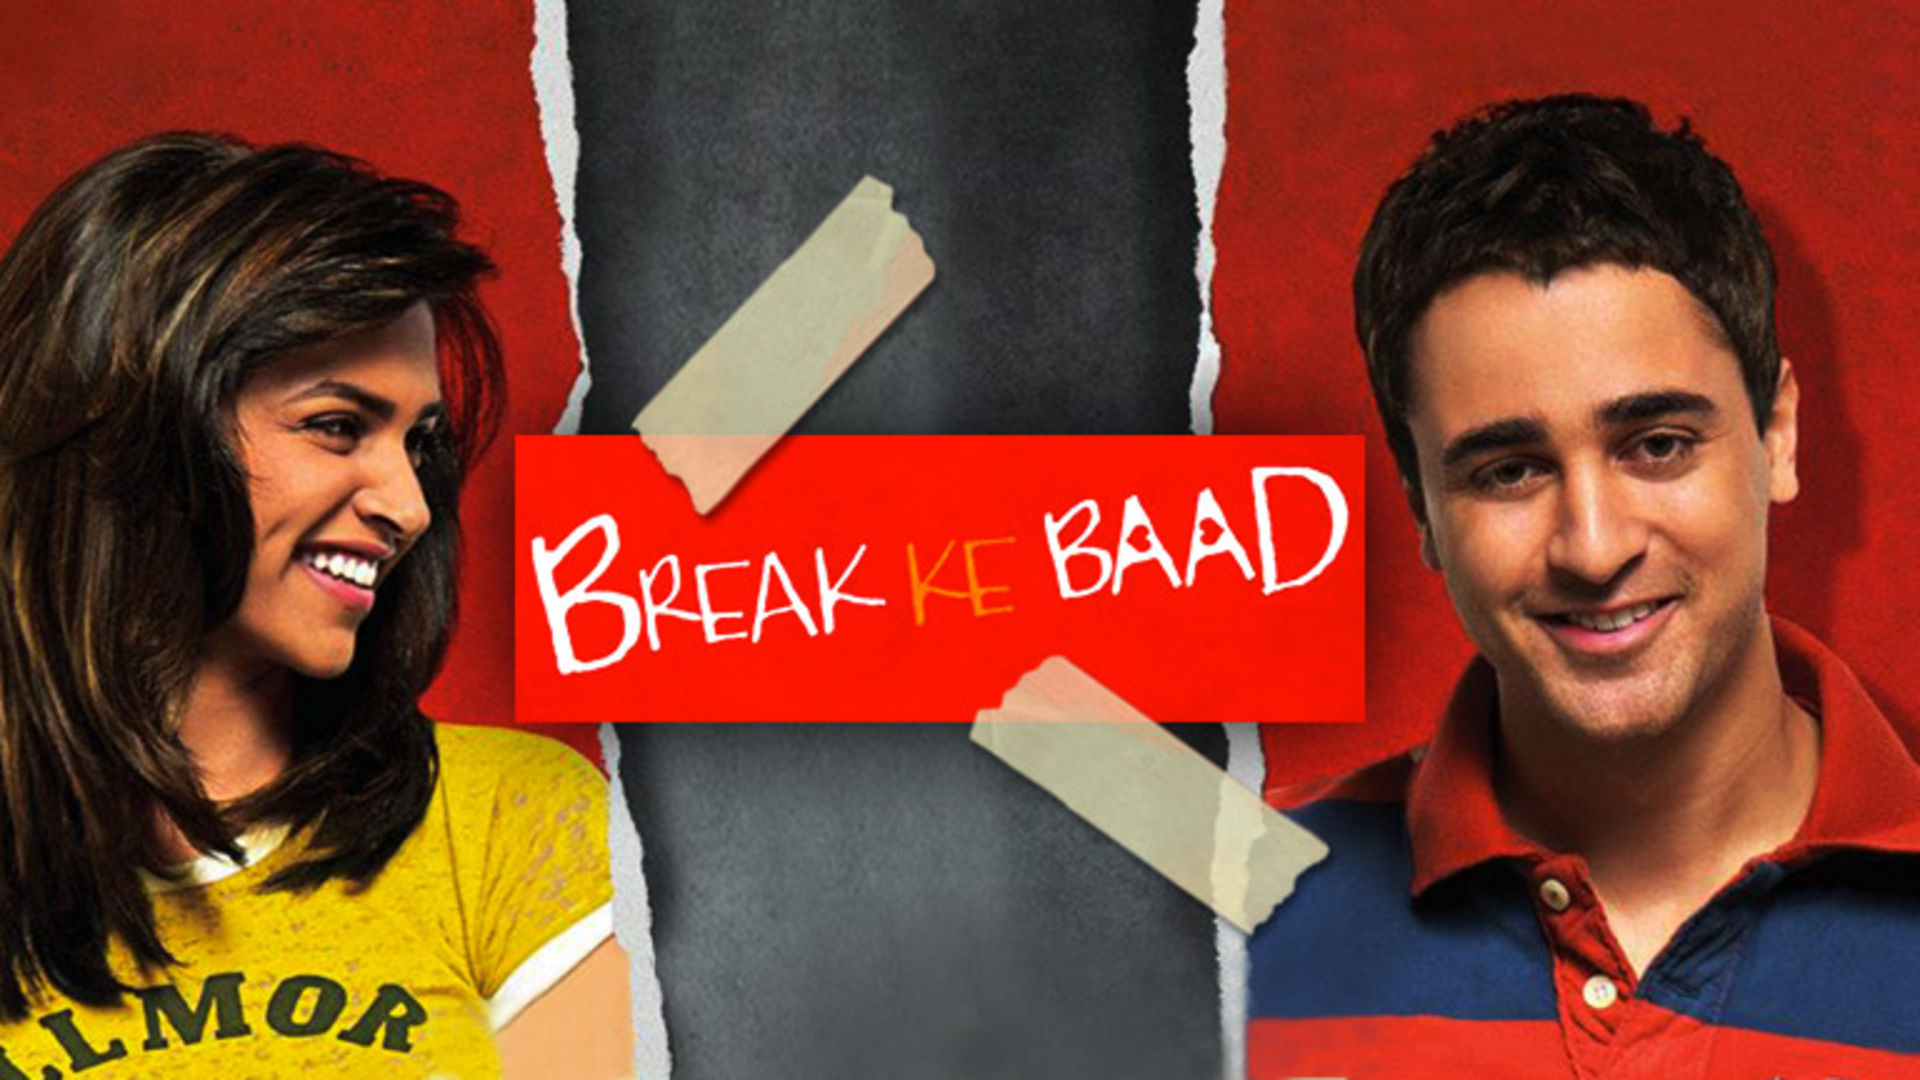 watch break ke baad full movie online in hd for free on hotstar